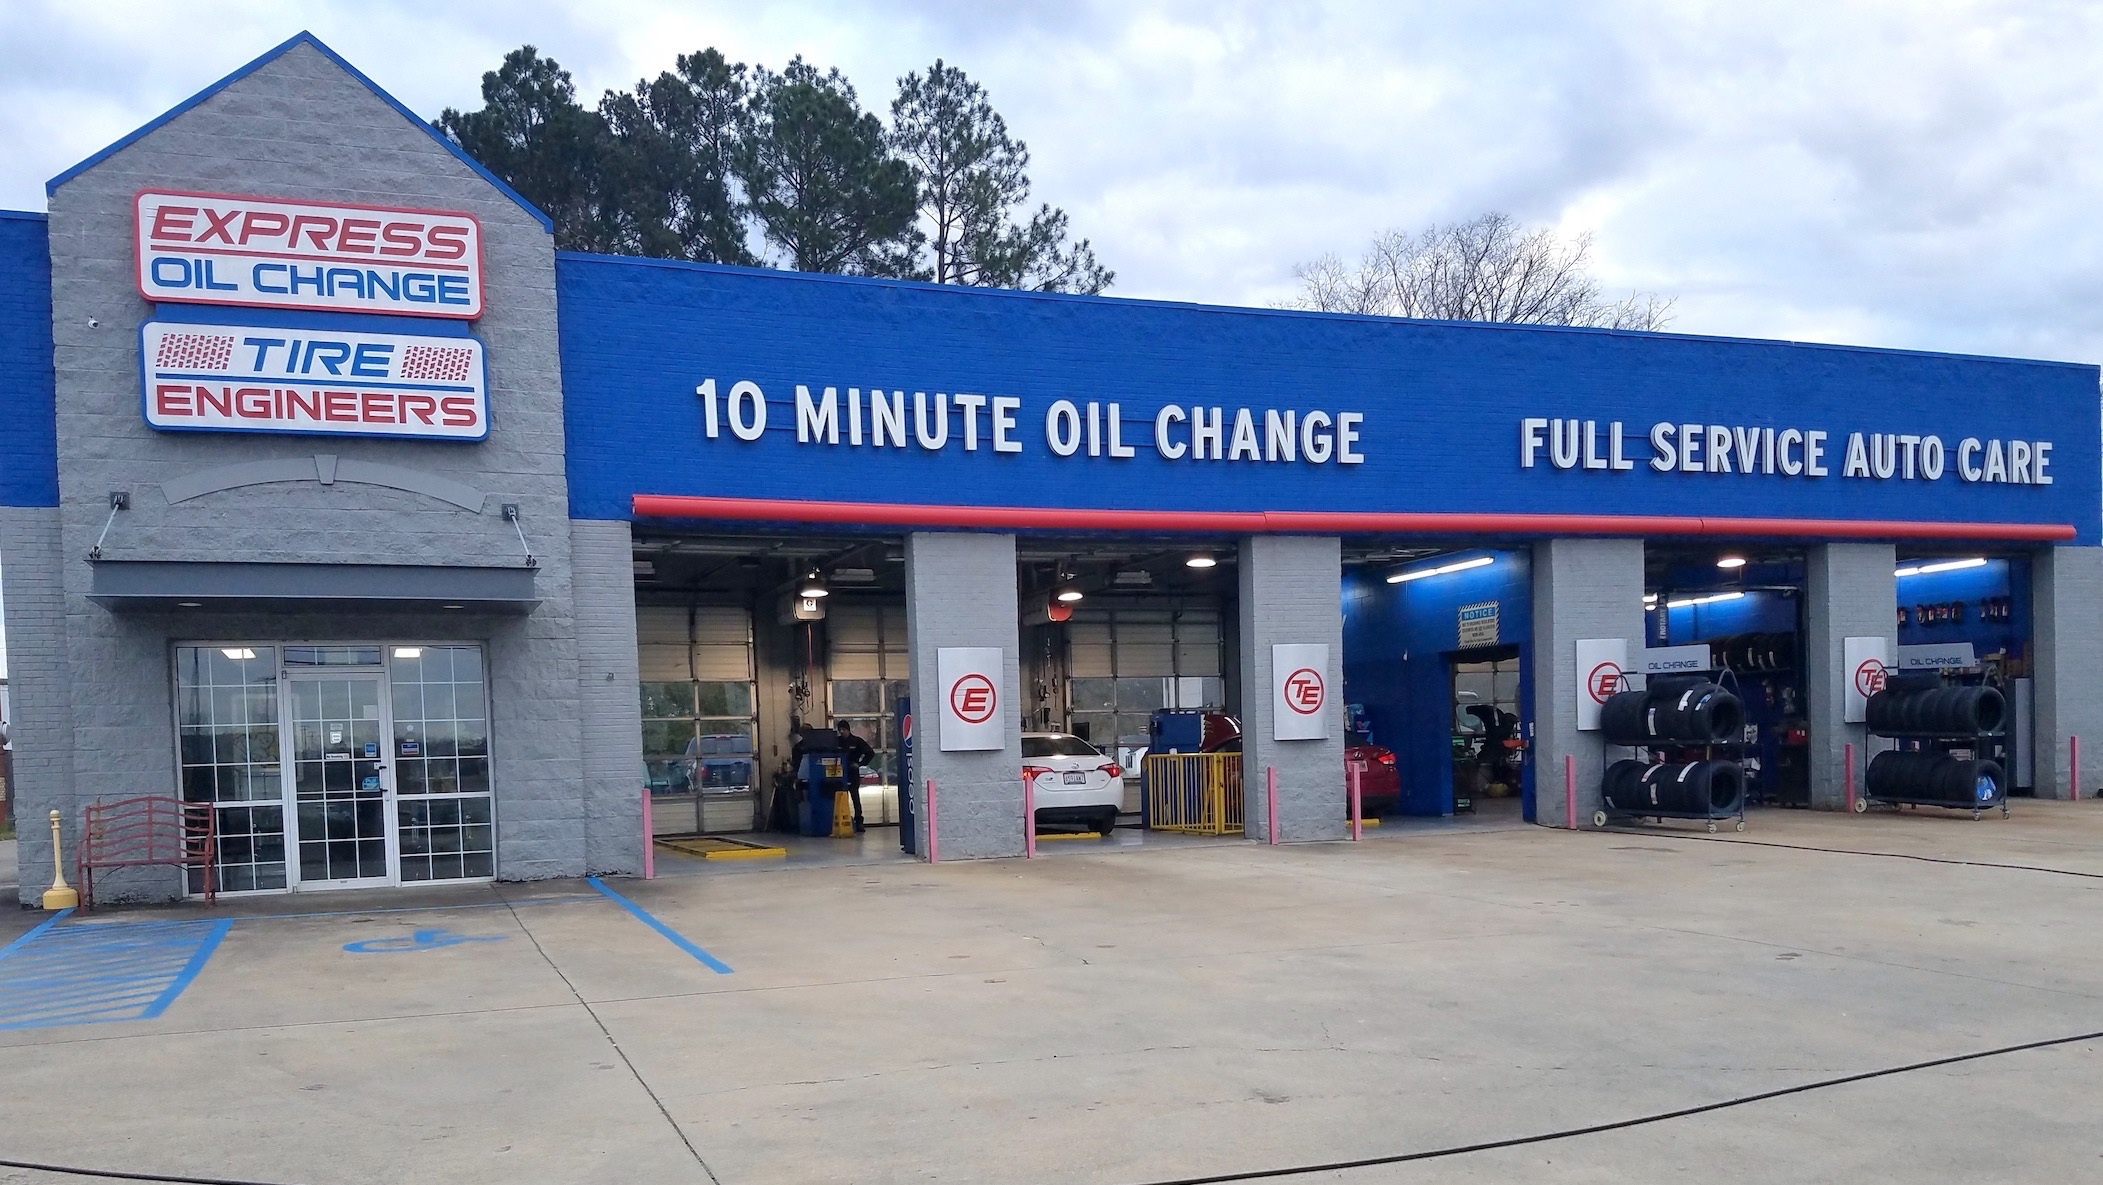 Express Oil Change & Tire Engineers Gadsden, AL store